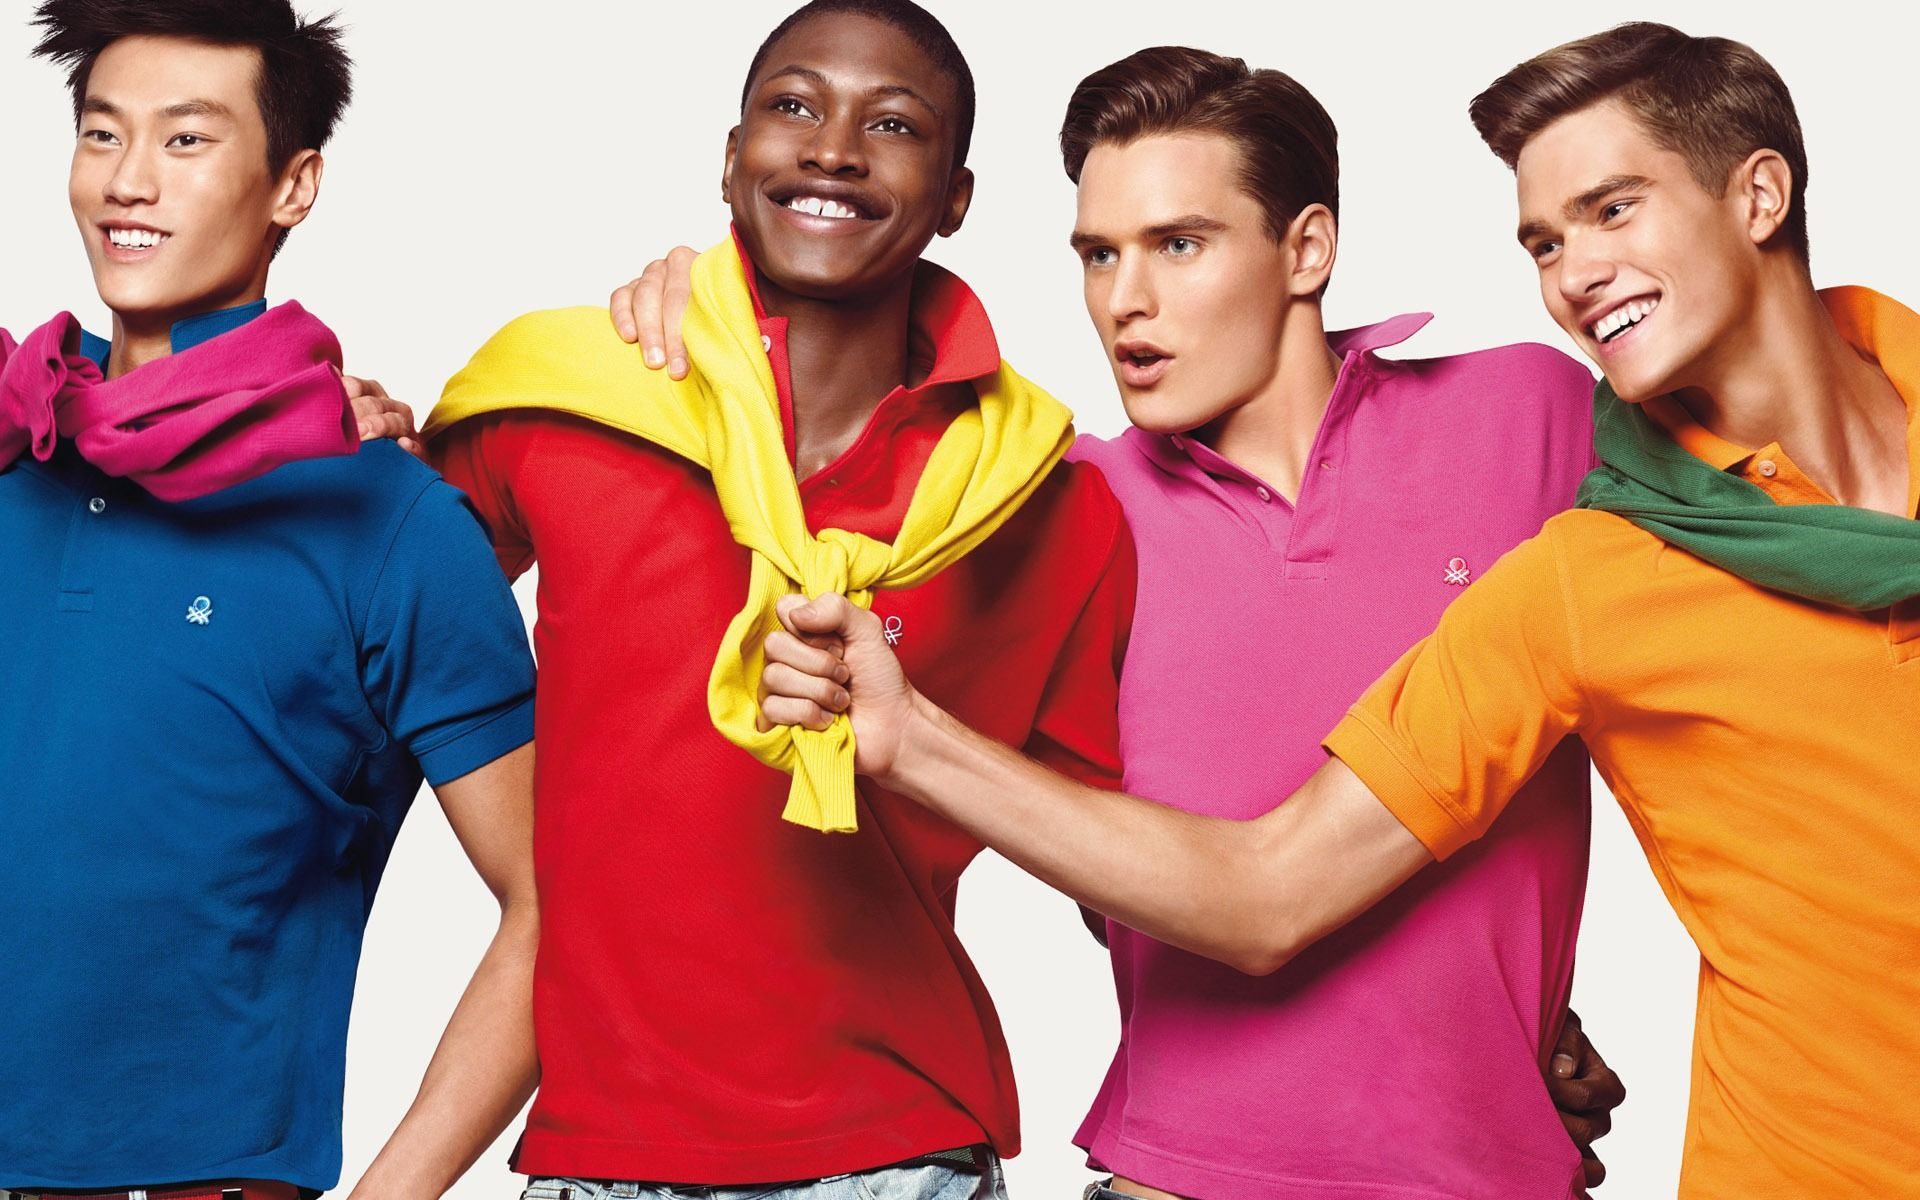 pics for united colors of benetton models benetton pinterest models colorful fashion and colors - United Color Of Benetton